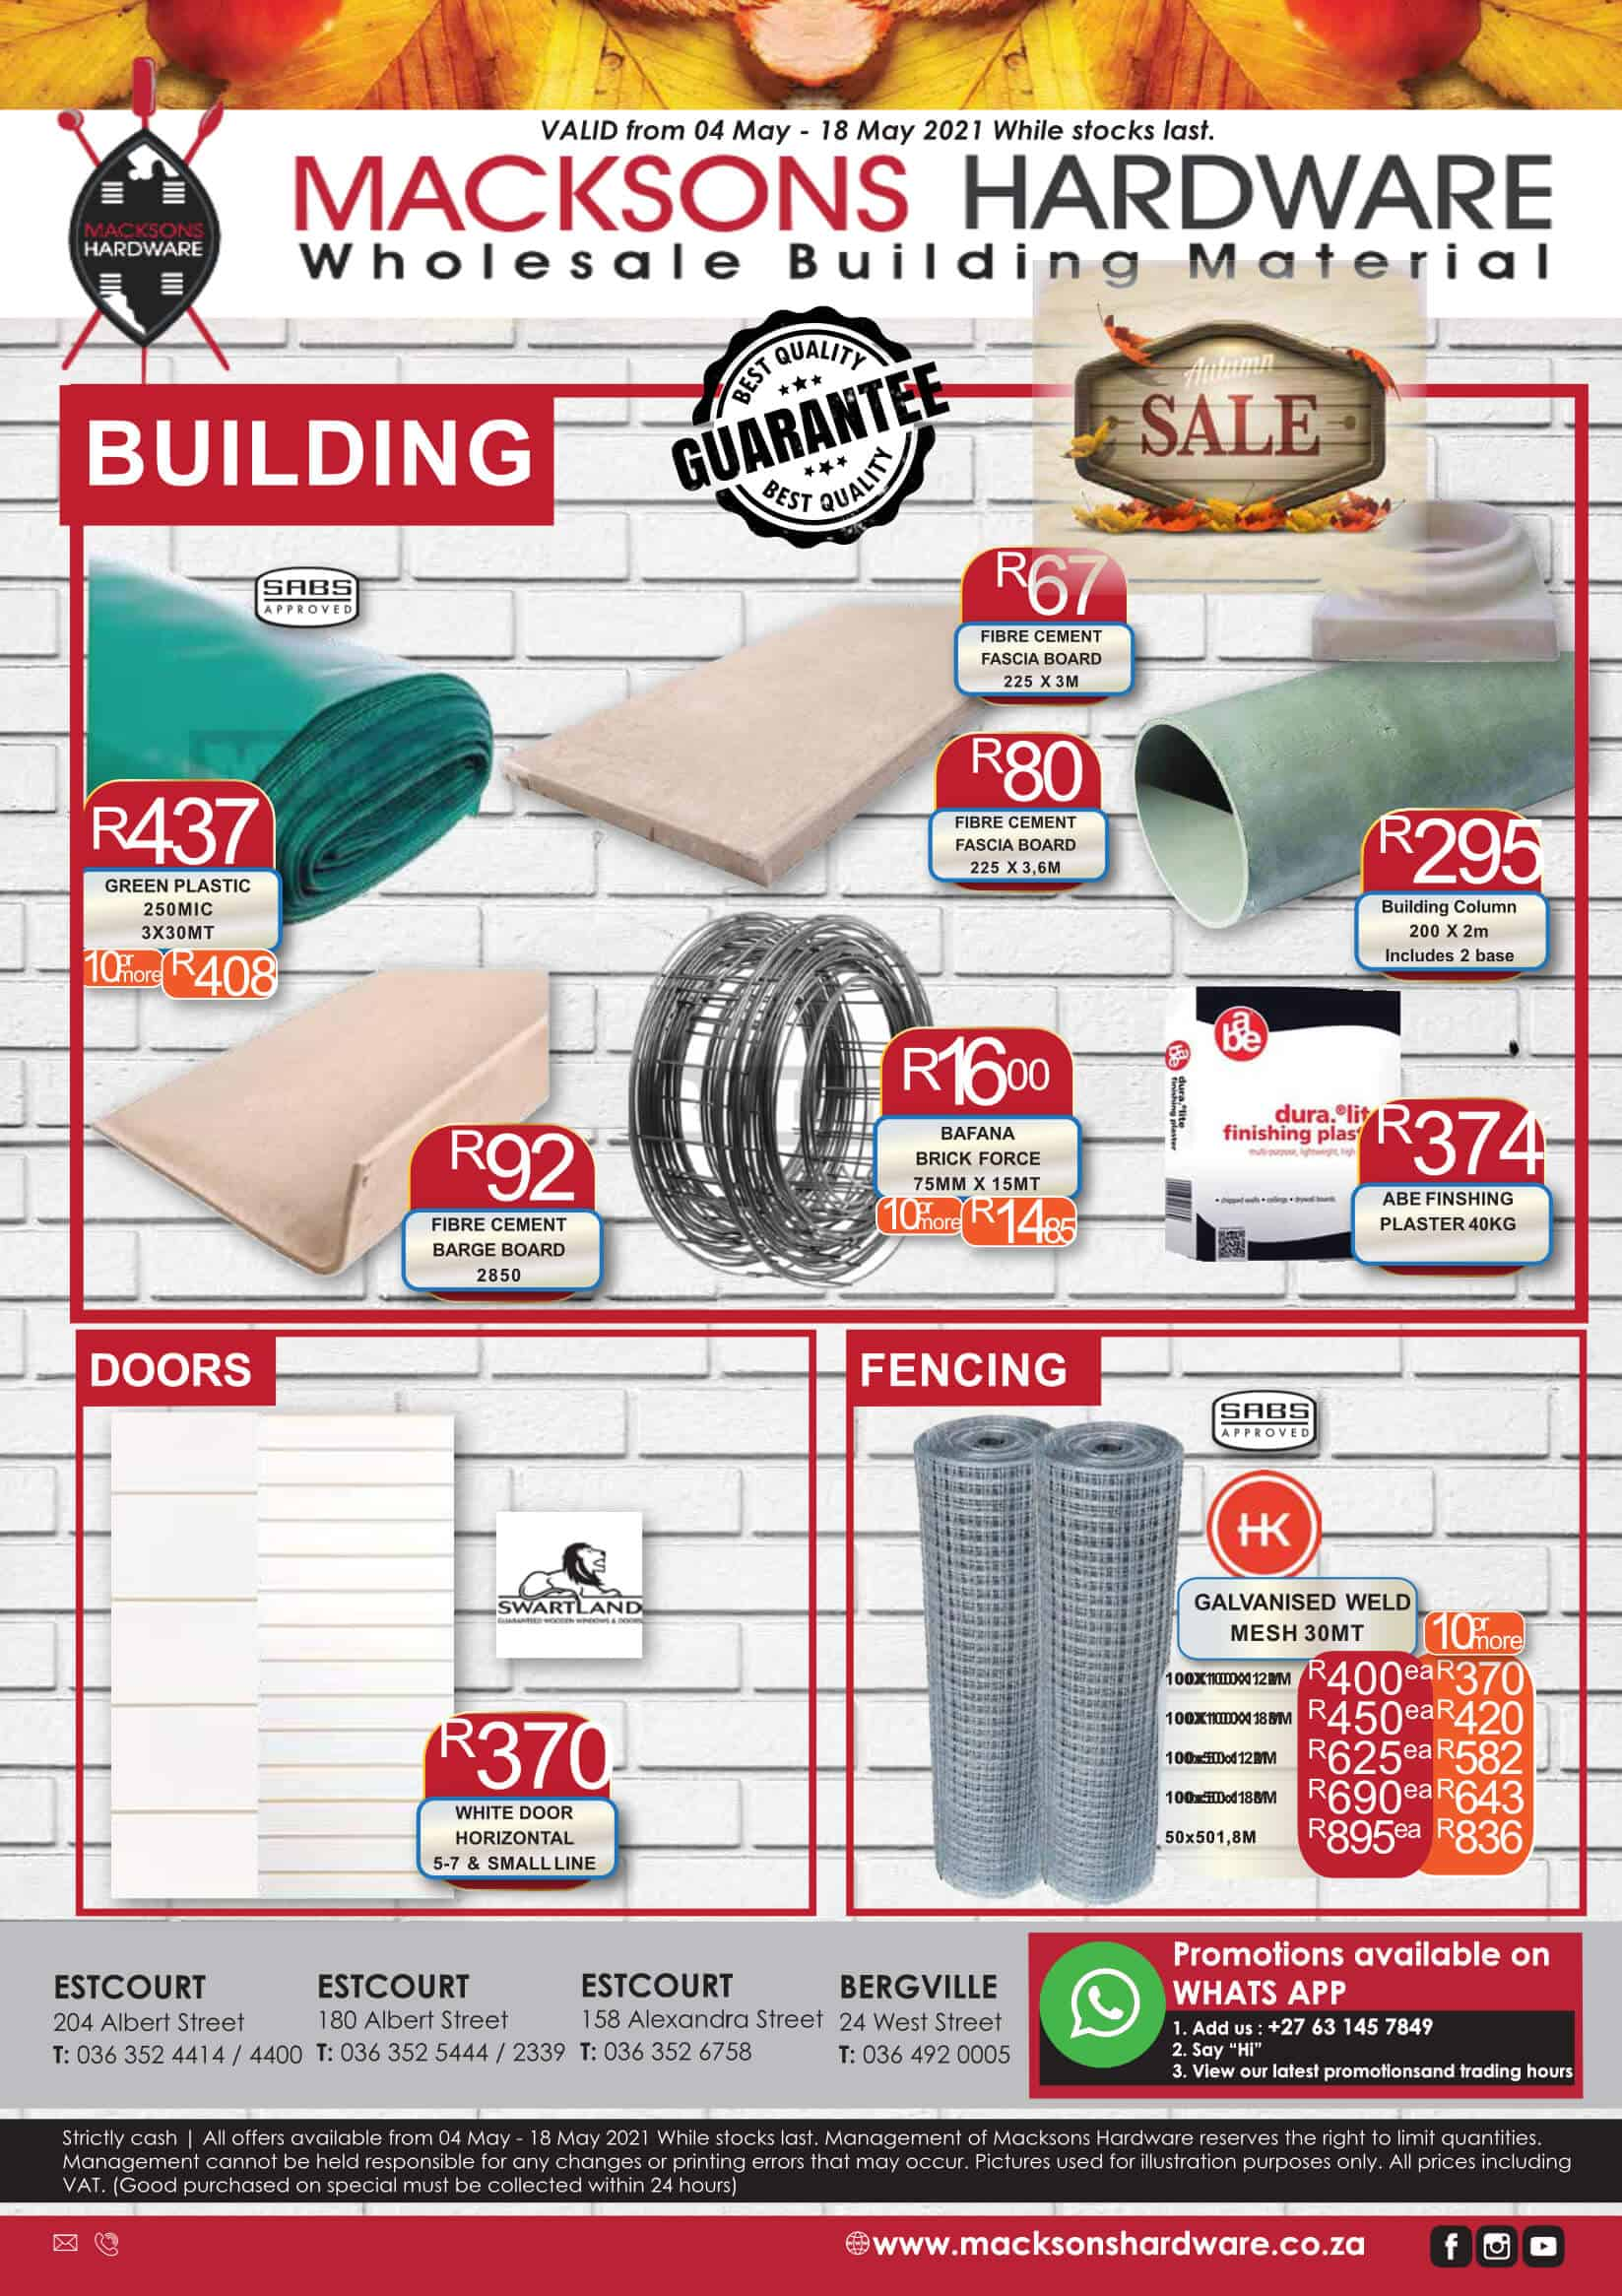 Macksons Hardware Special Page 1 May 2021